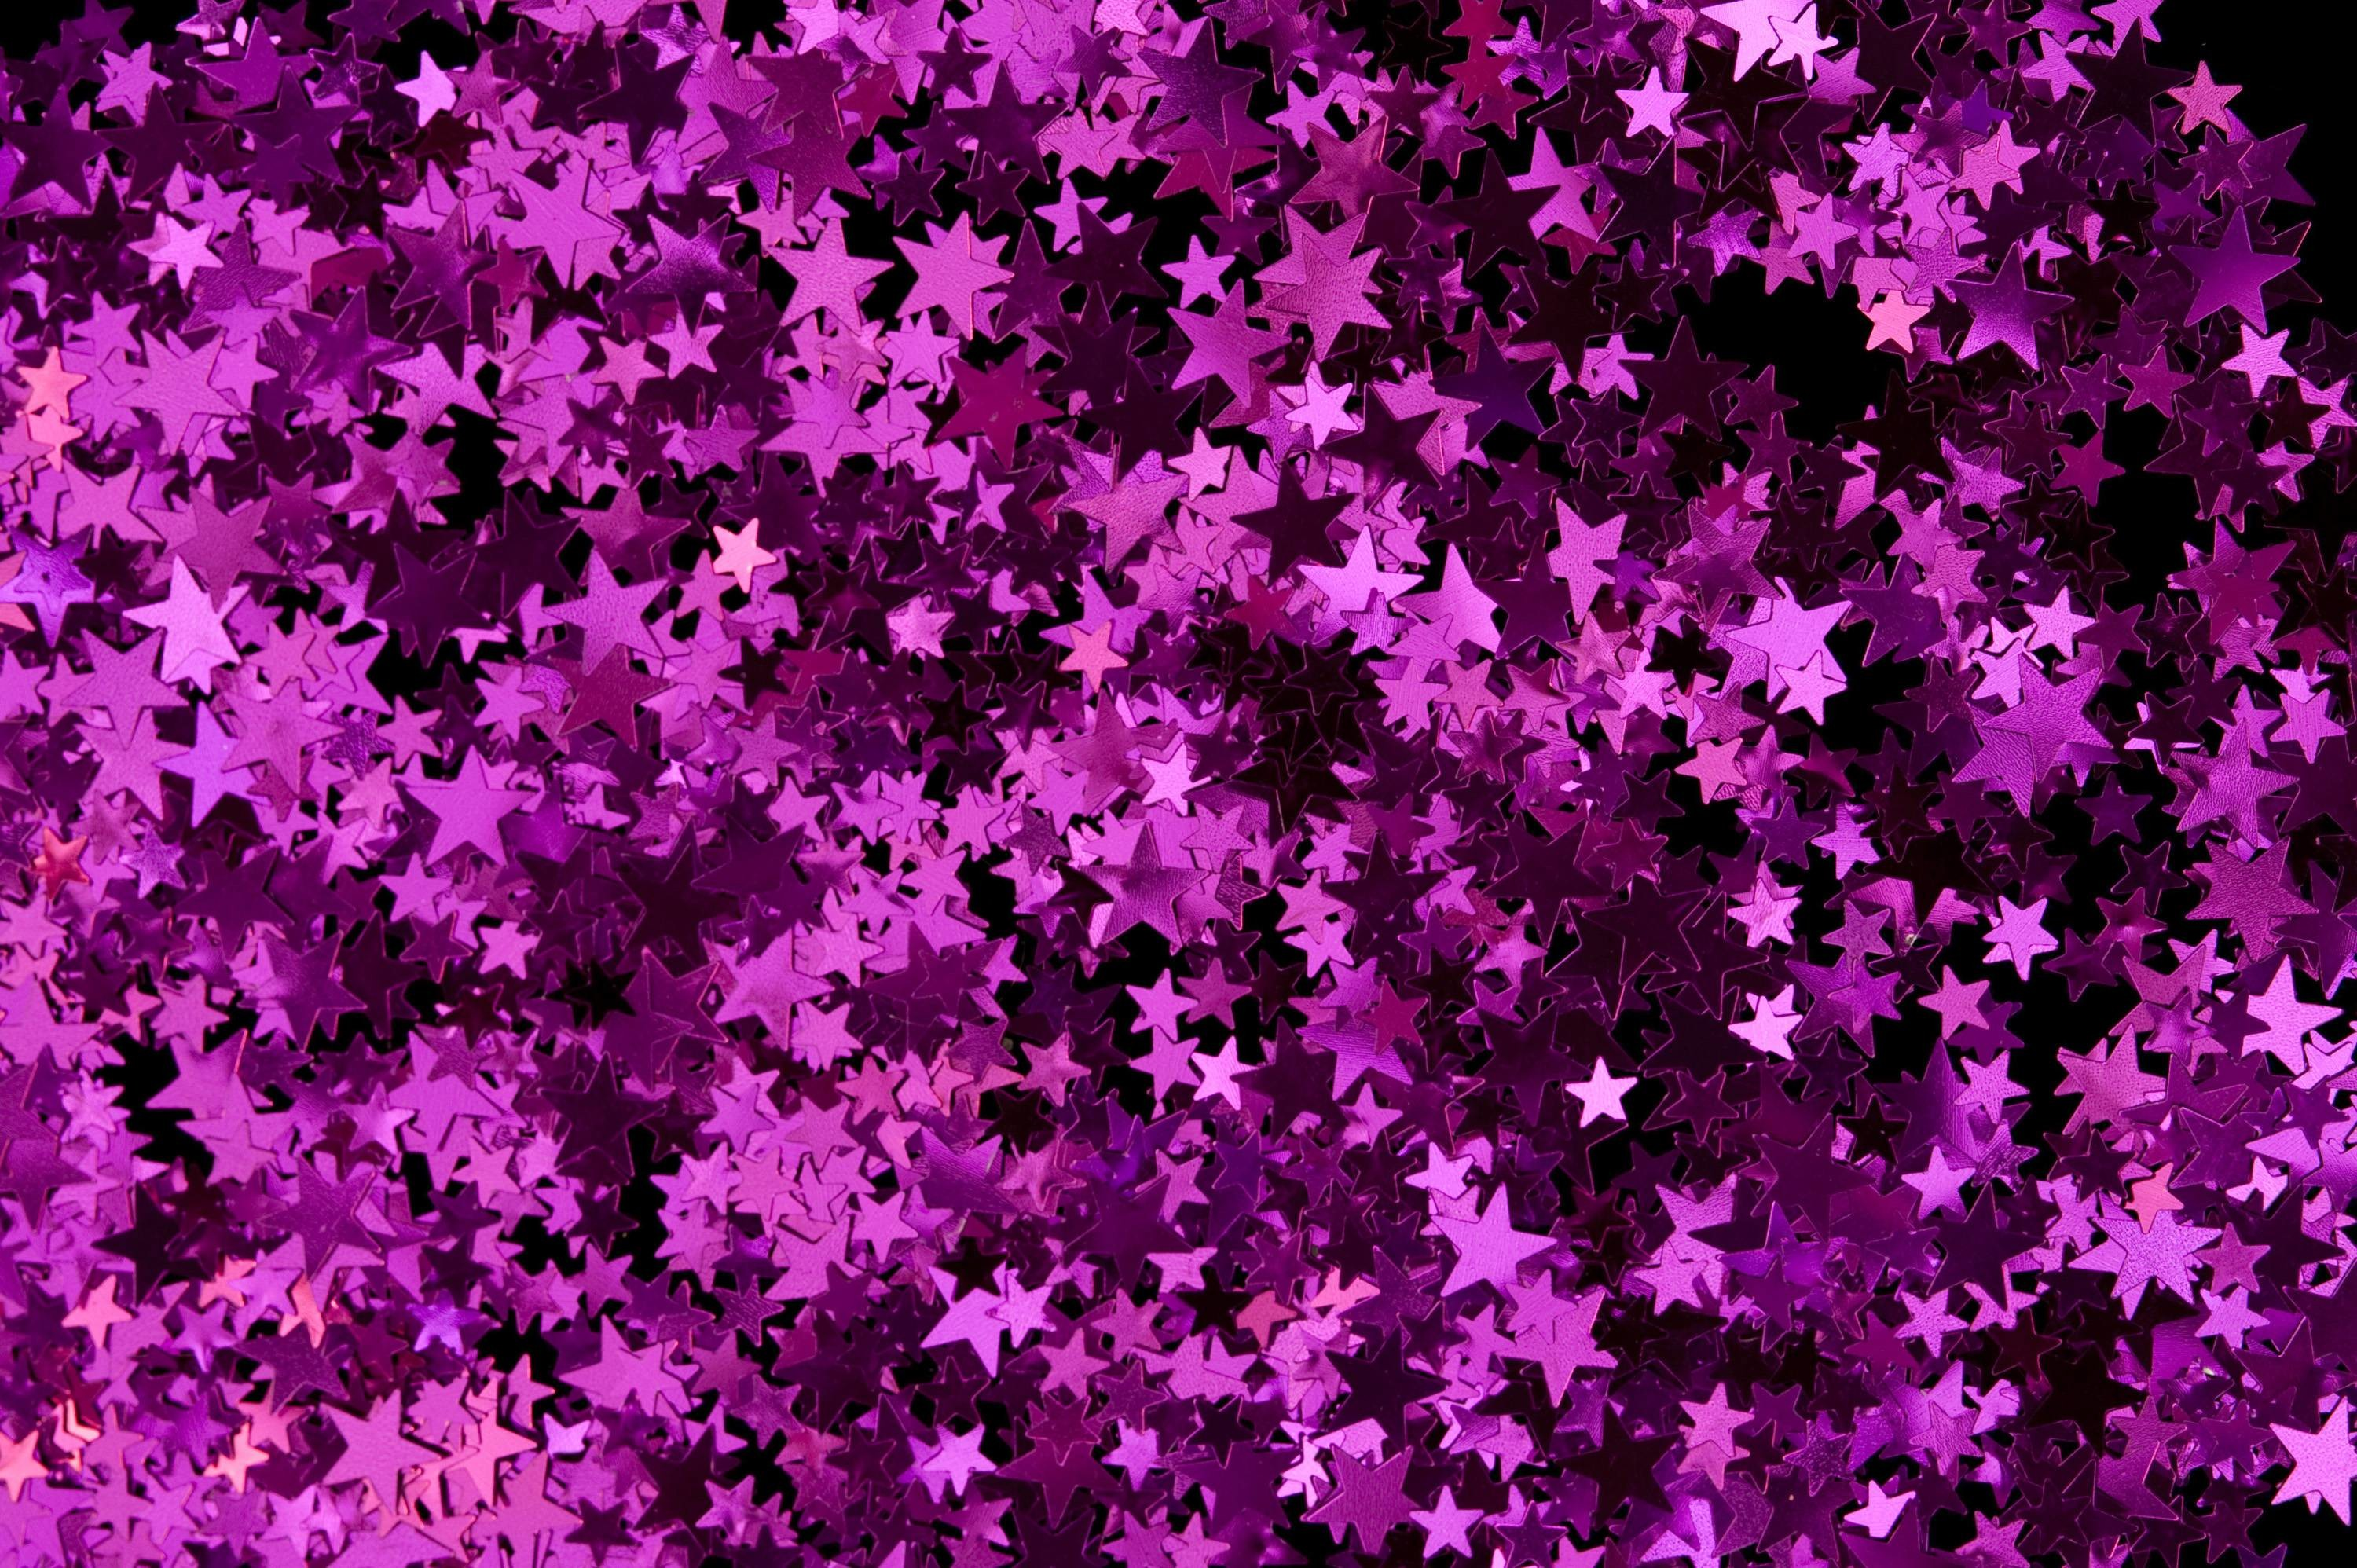 Pink and purple glitter wallpapers 67 images 3000x1996 colorful glitter wallpaper images pictures becuo voltagebd Image collections